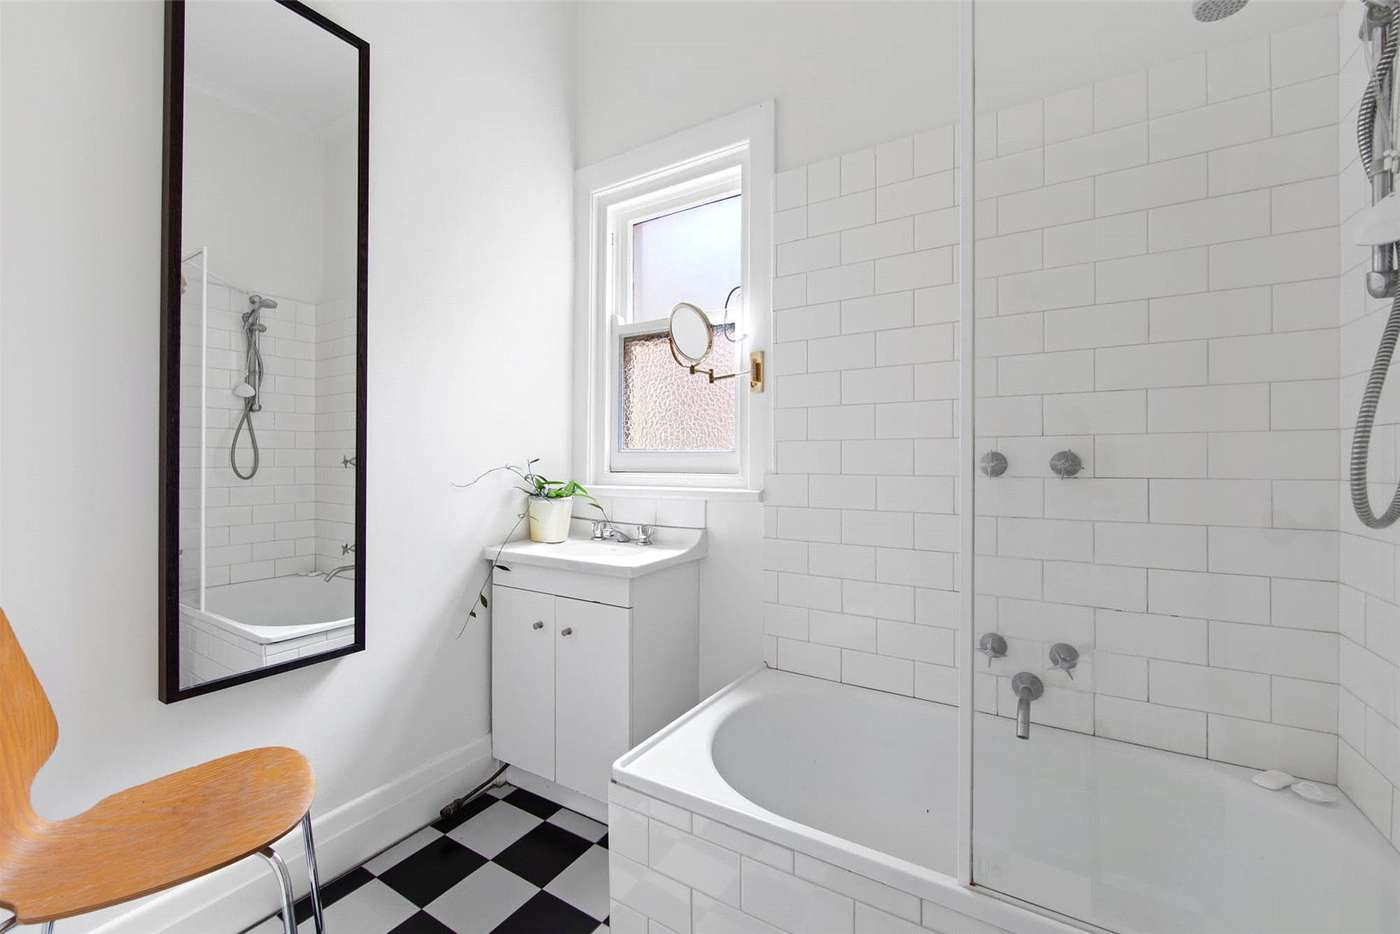 Seventh view of Homely apartment listing, 2/28 Dalgety Street, St Kilda VIC 3182